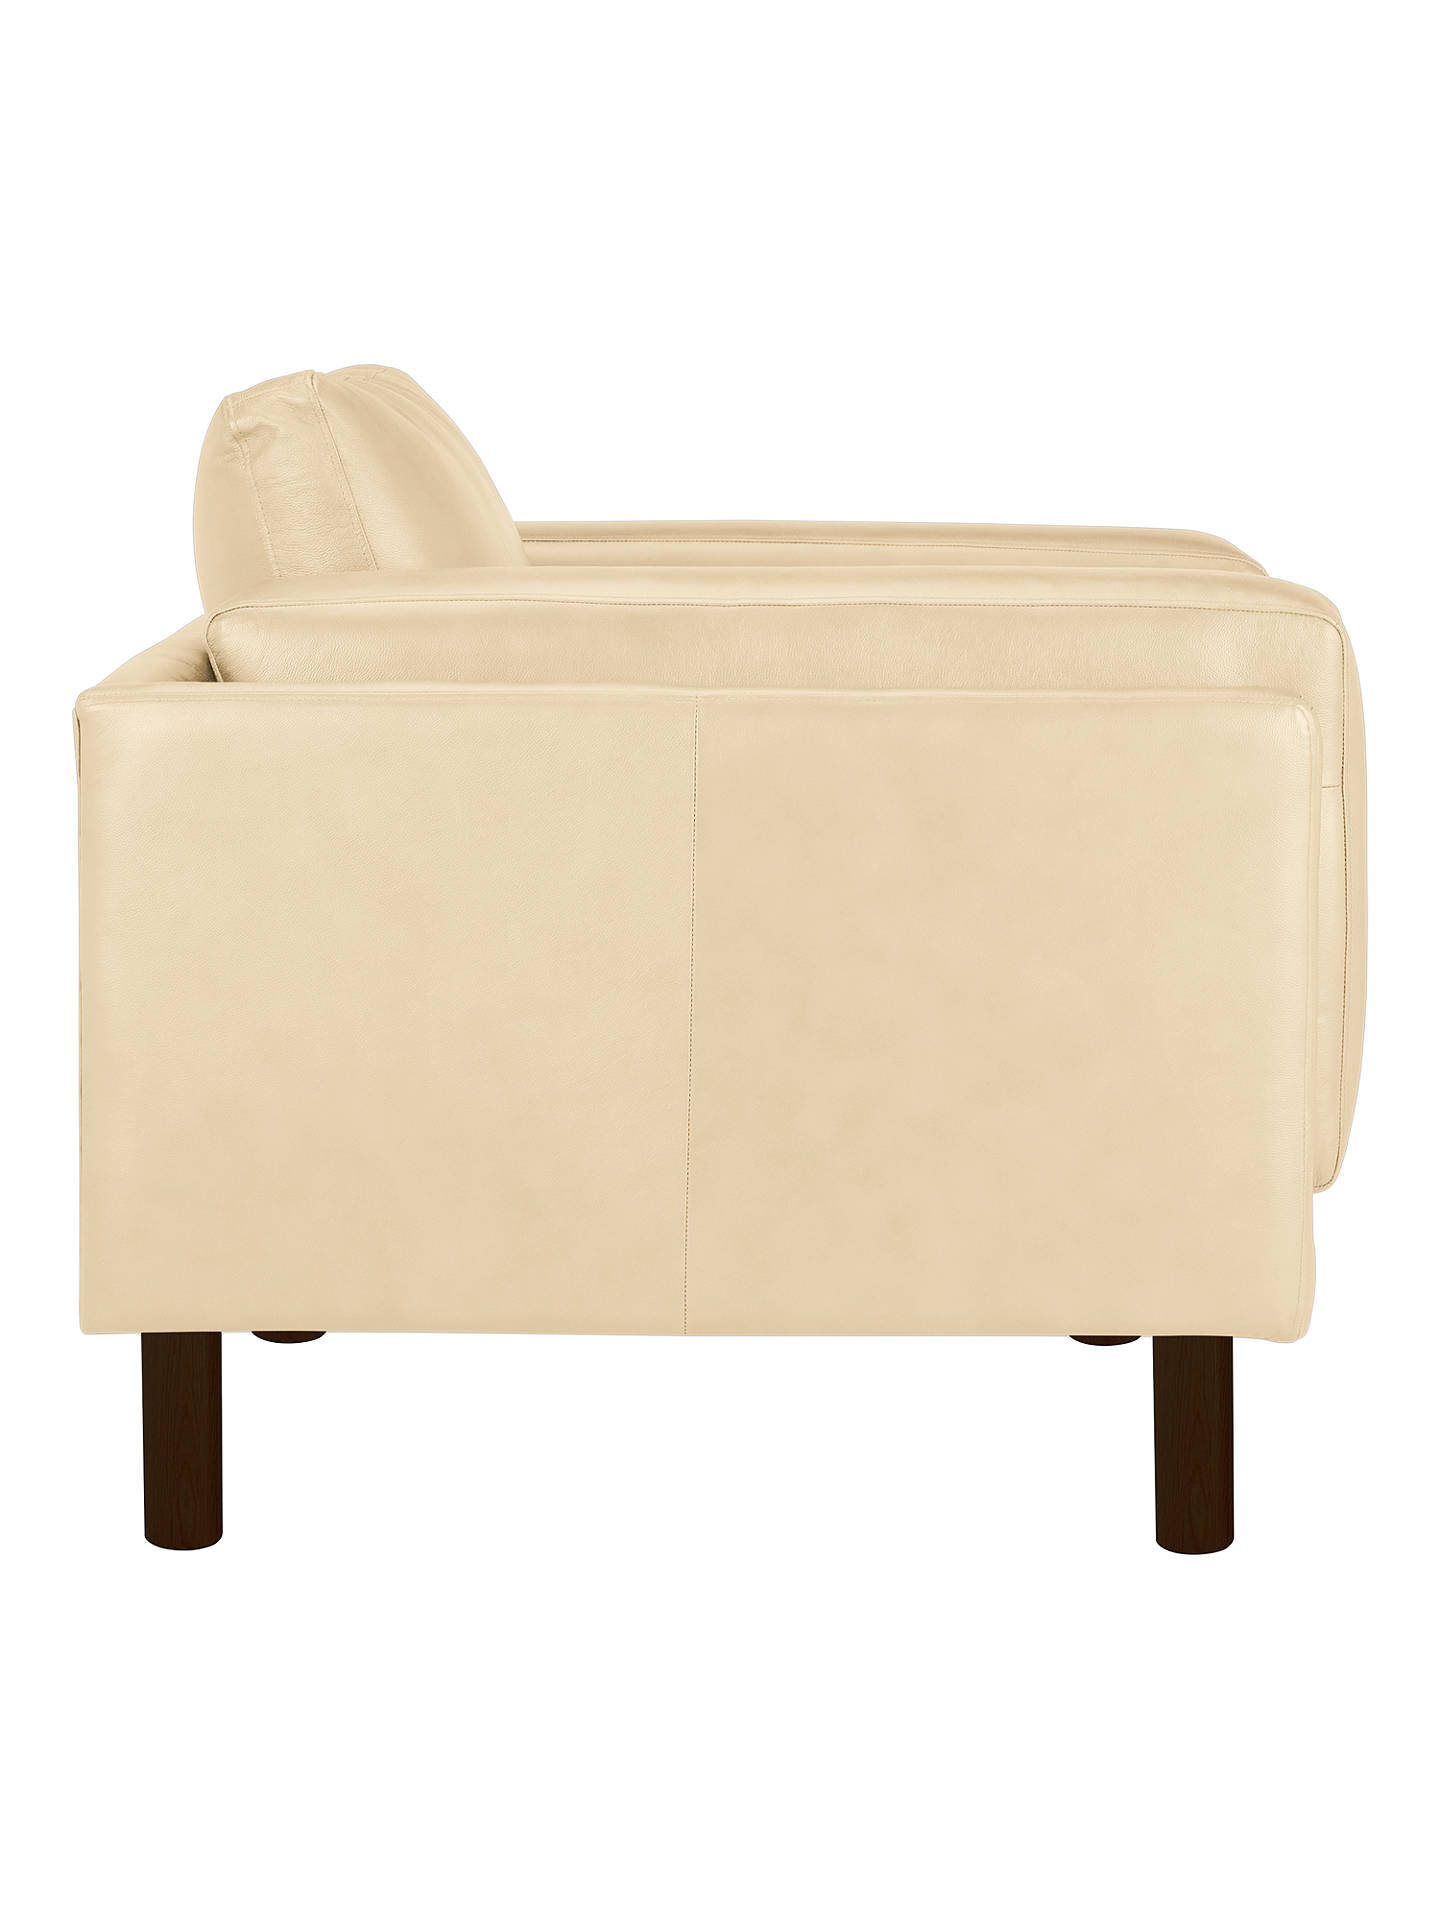 Buy Design Project by John Lewis No.002 Leather Armchair, Dark Leg, Nature Cream Online at johnlewis.com